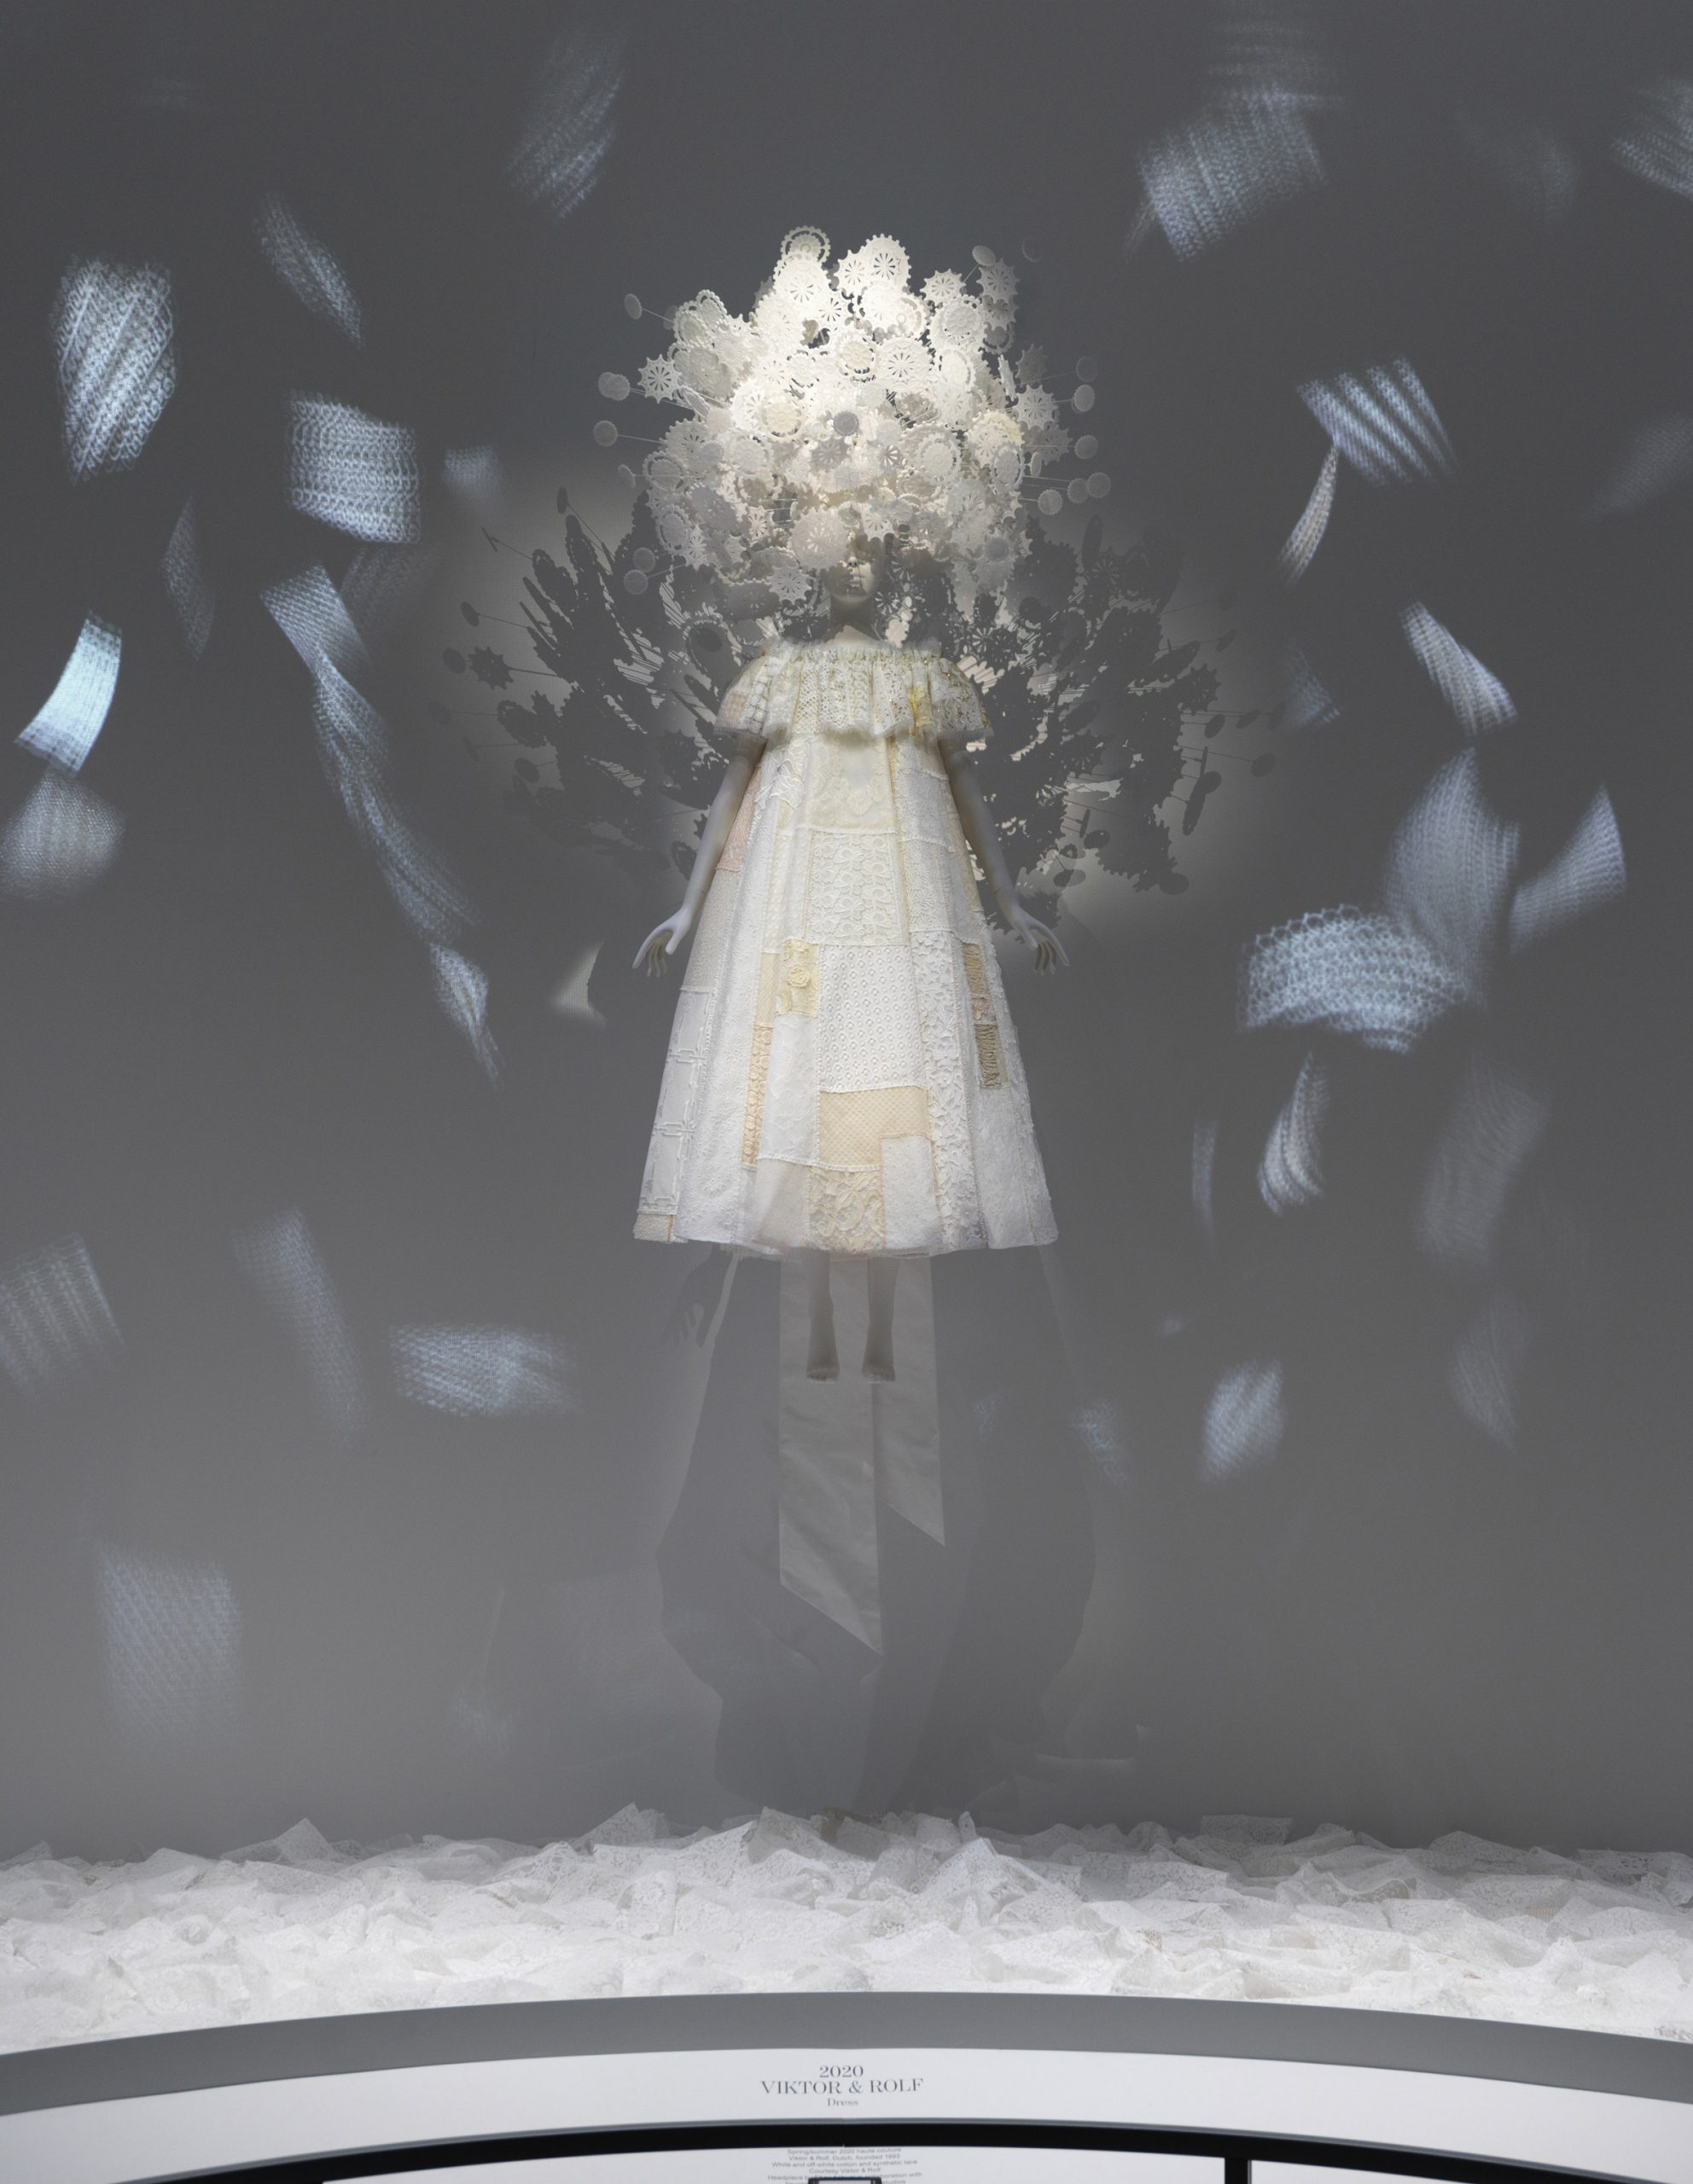 Spring/summer 2020 haute couture by Viktor + Rolf in the About Time exhibition at The Met